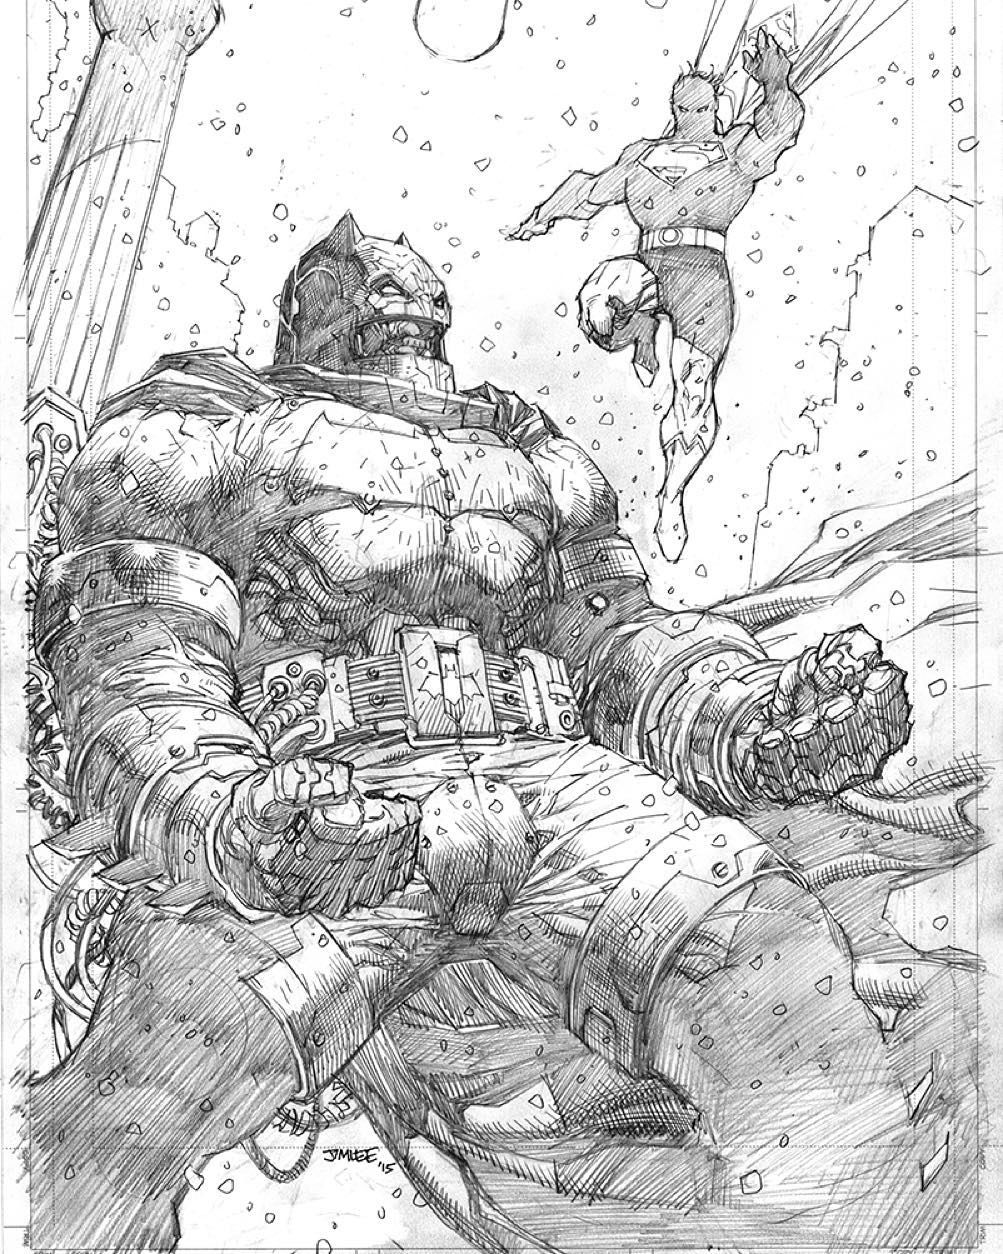 """regram @jimleeart """"More wind. Now he's talking--trying to reason with me. I can't hear him of course"""" Finished pencils for my Dark Knight 3:the Master Race #2 variant cover. #DCComics #dk3 #batman #superman #pencils #jimlee #cropped #crimealley #dkr #1in500 #frankmiller #brianazzarello #andykubert #december"""